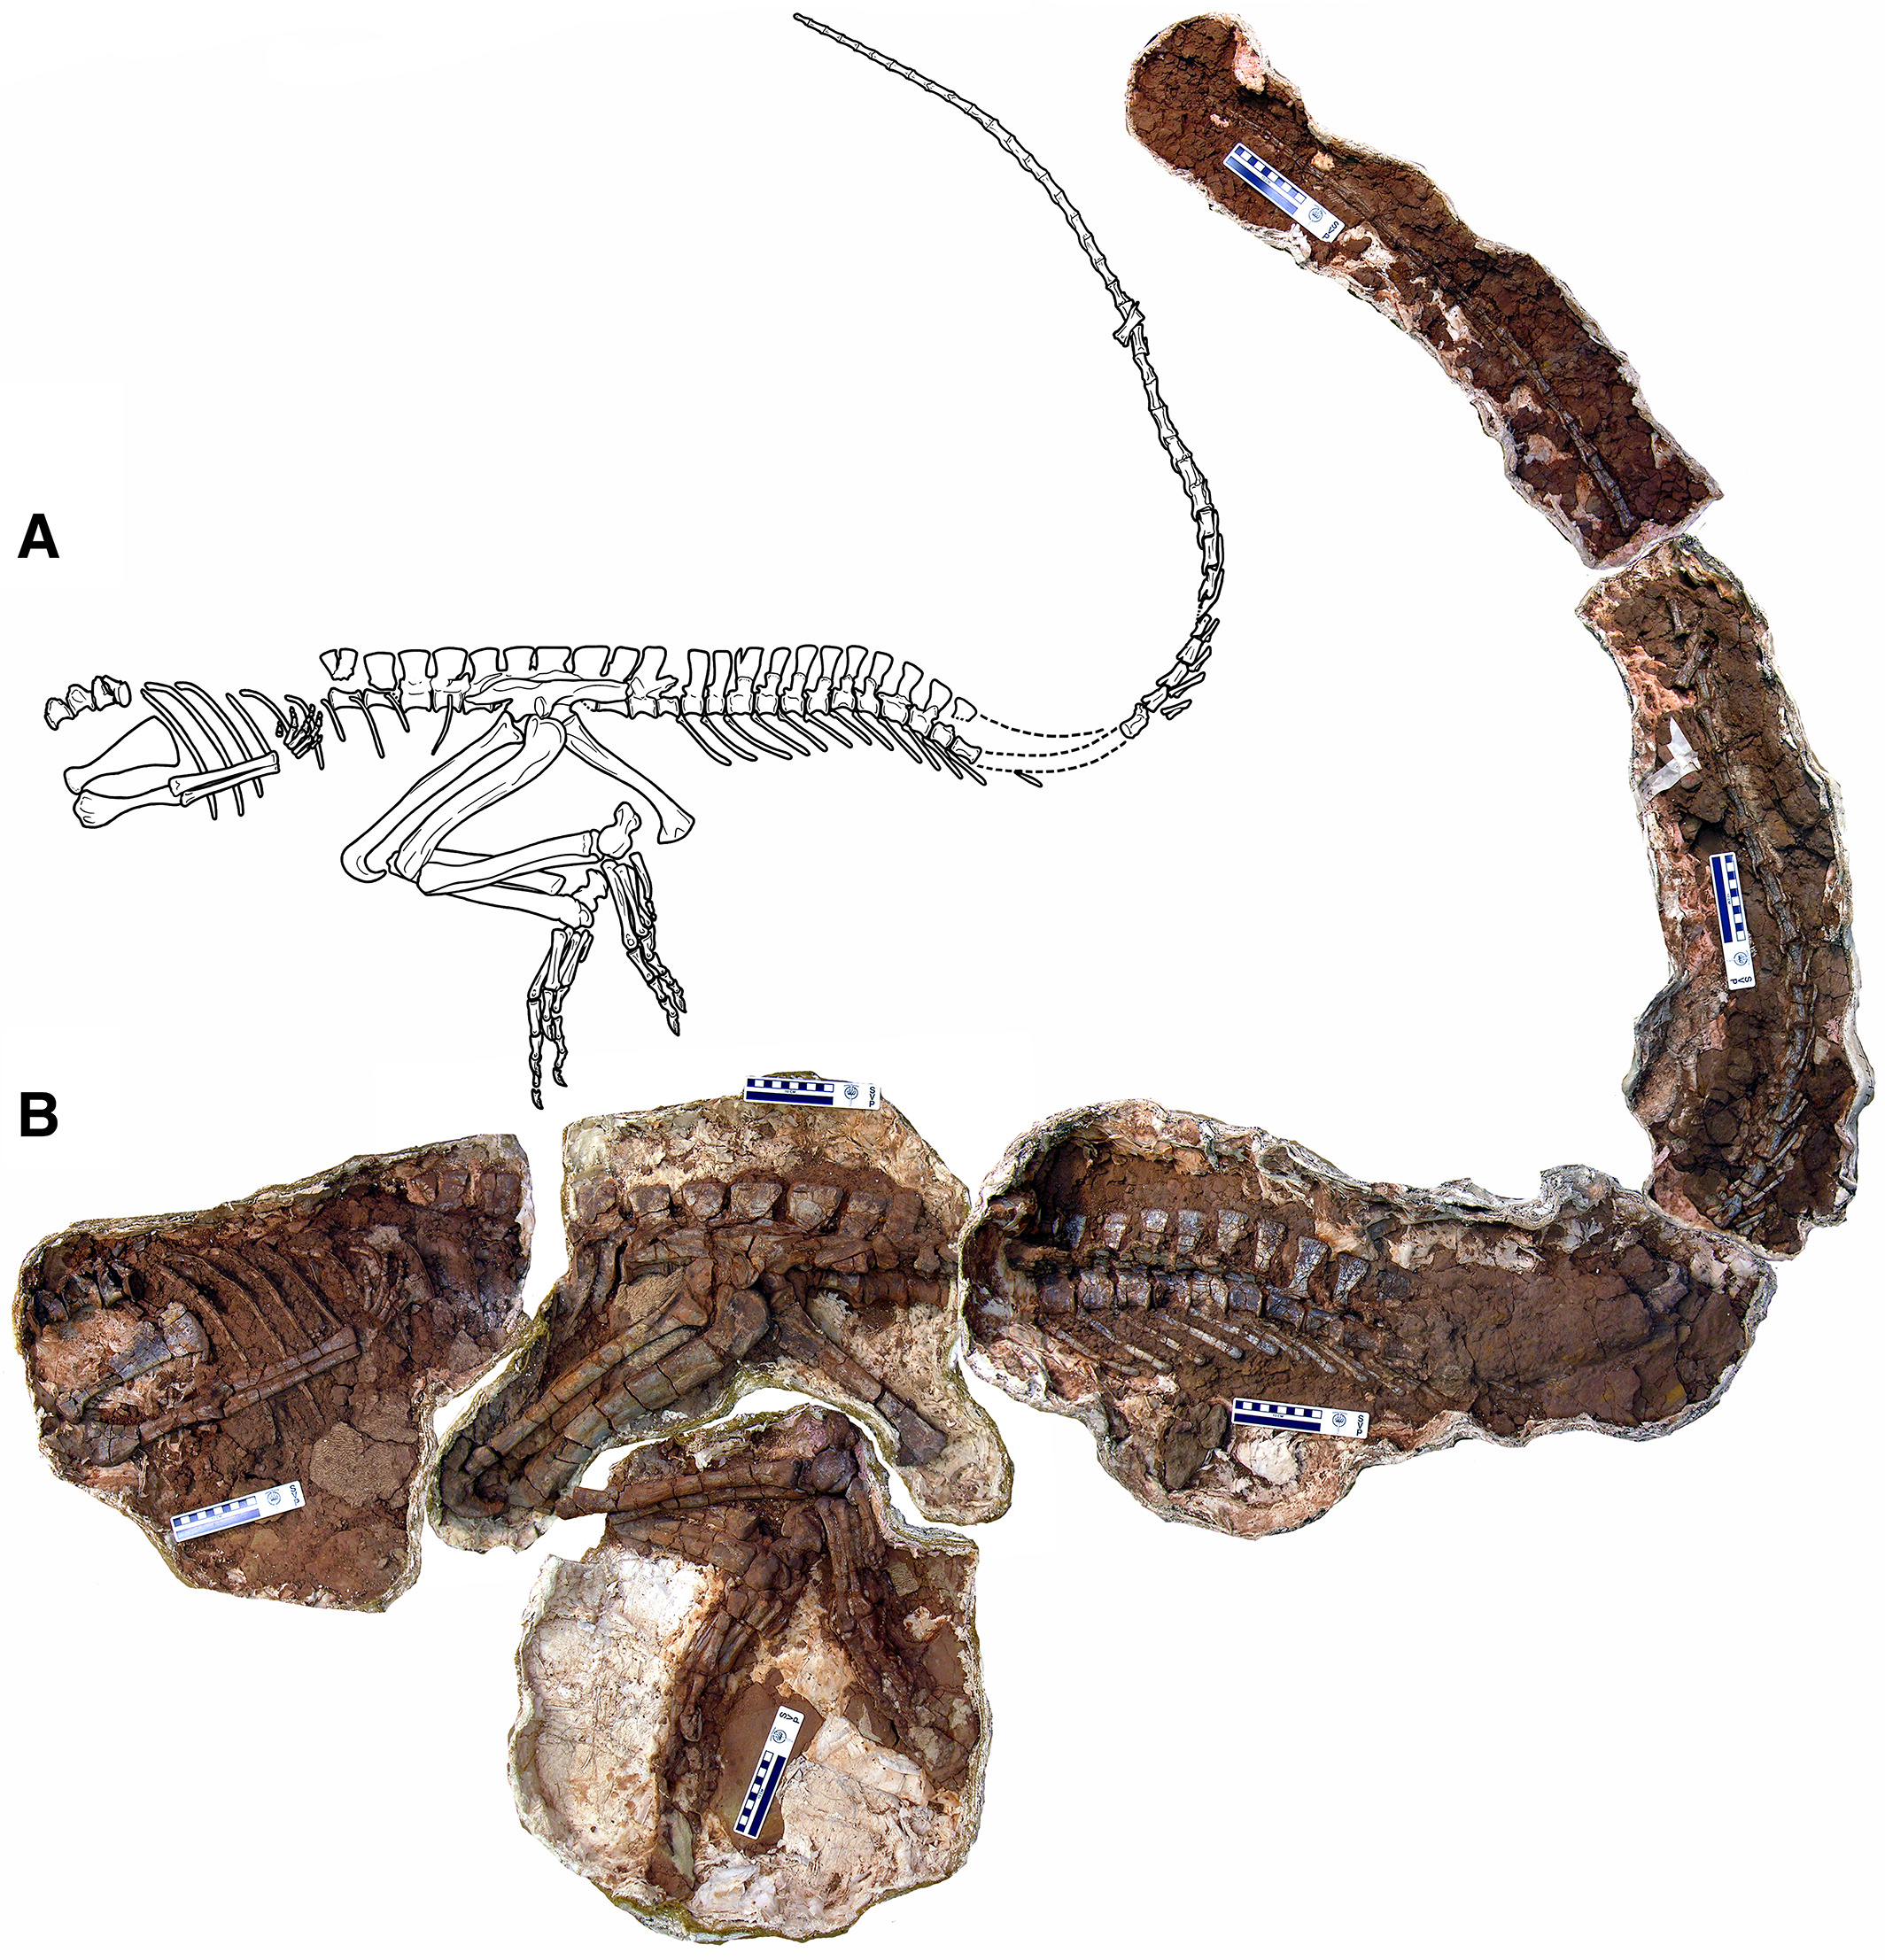 Line drawing (A) and photo (B) of the Poposaurus skeleton (YPM 57100) after excavation.